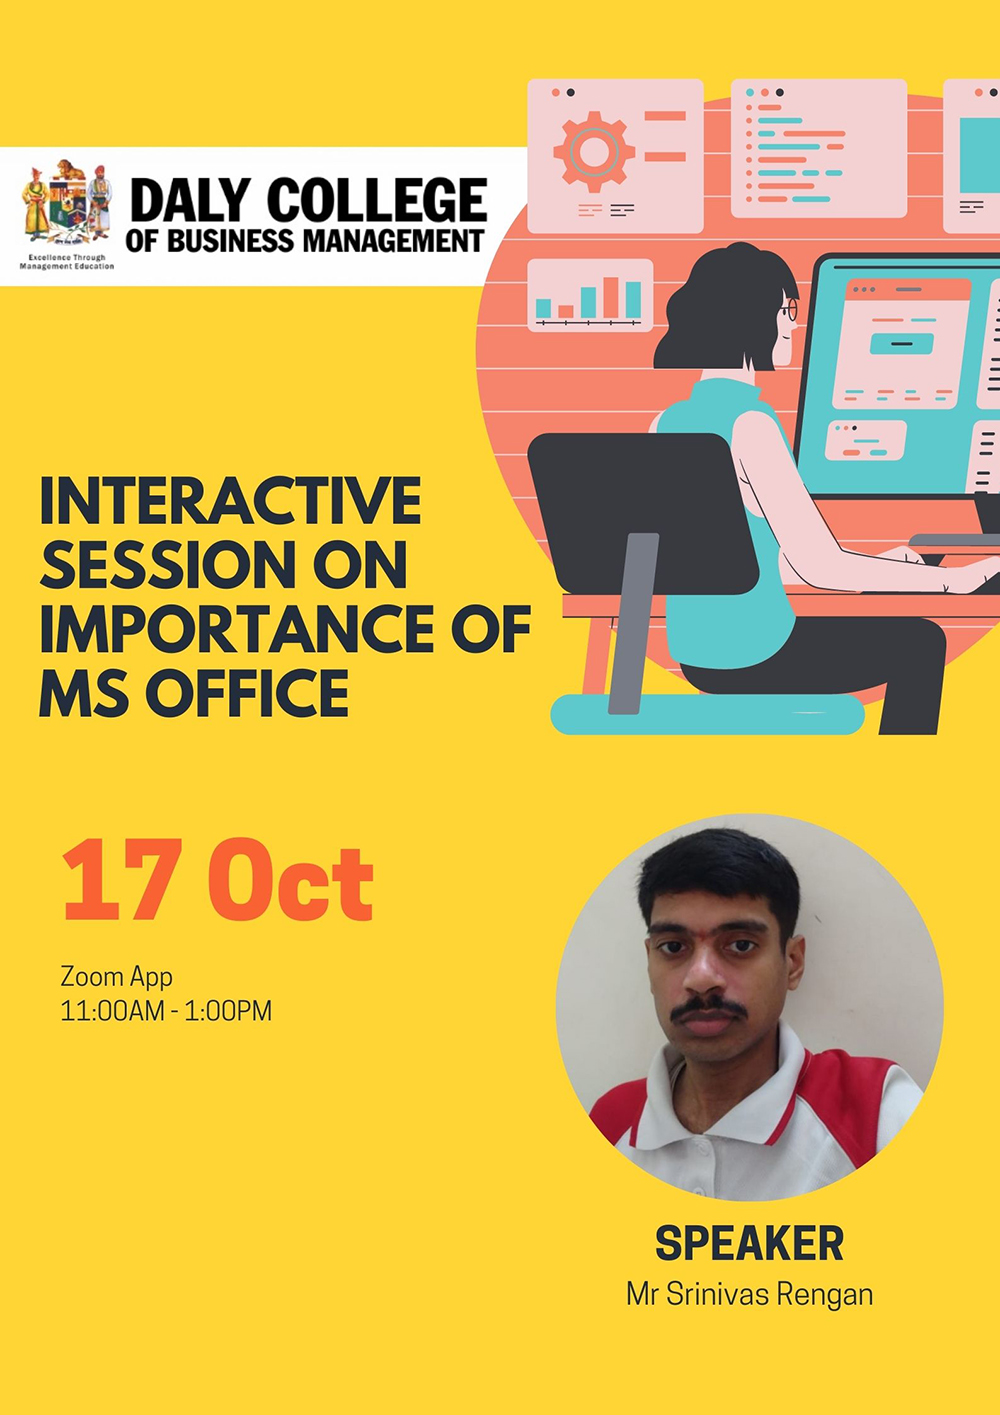 Interactive Session on Important of Ms Office